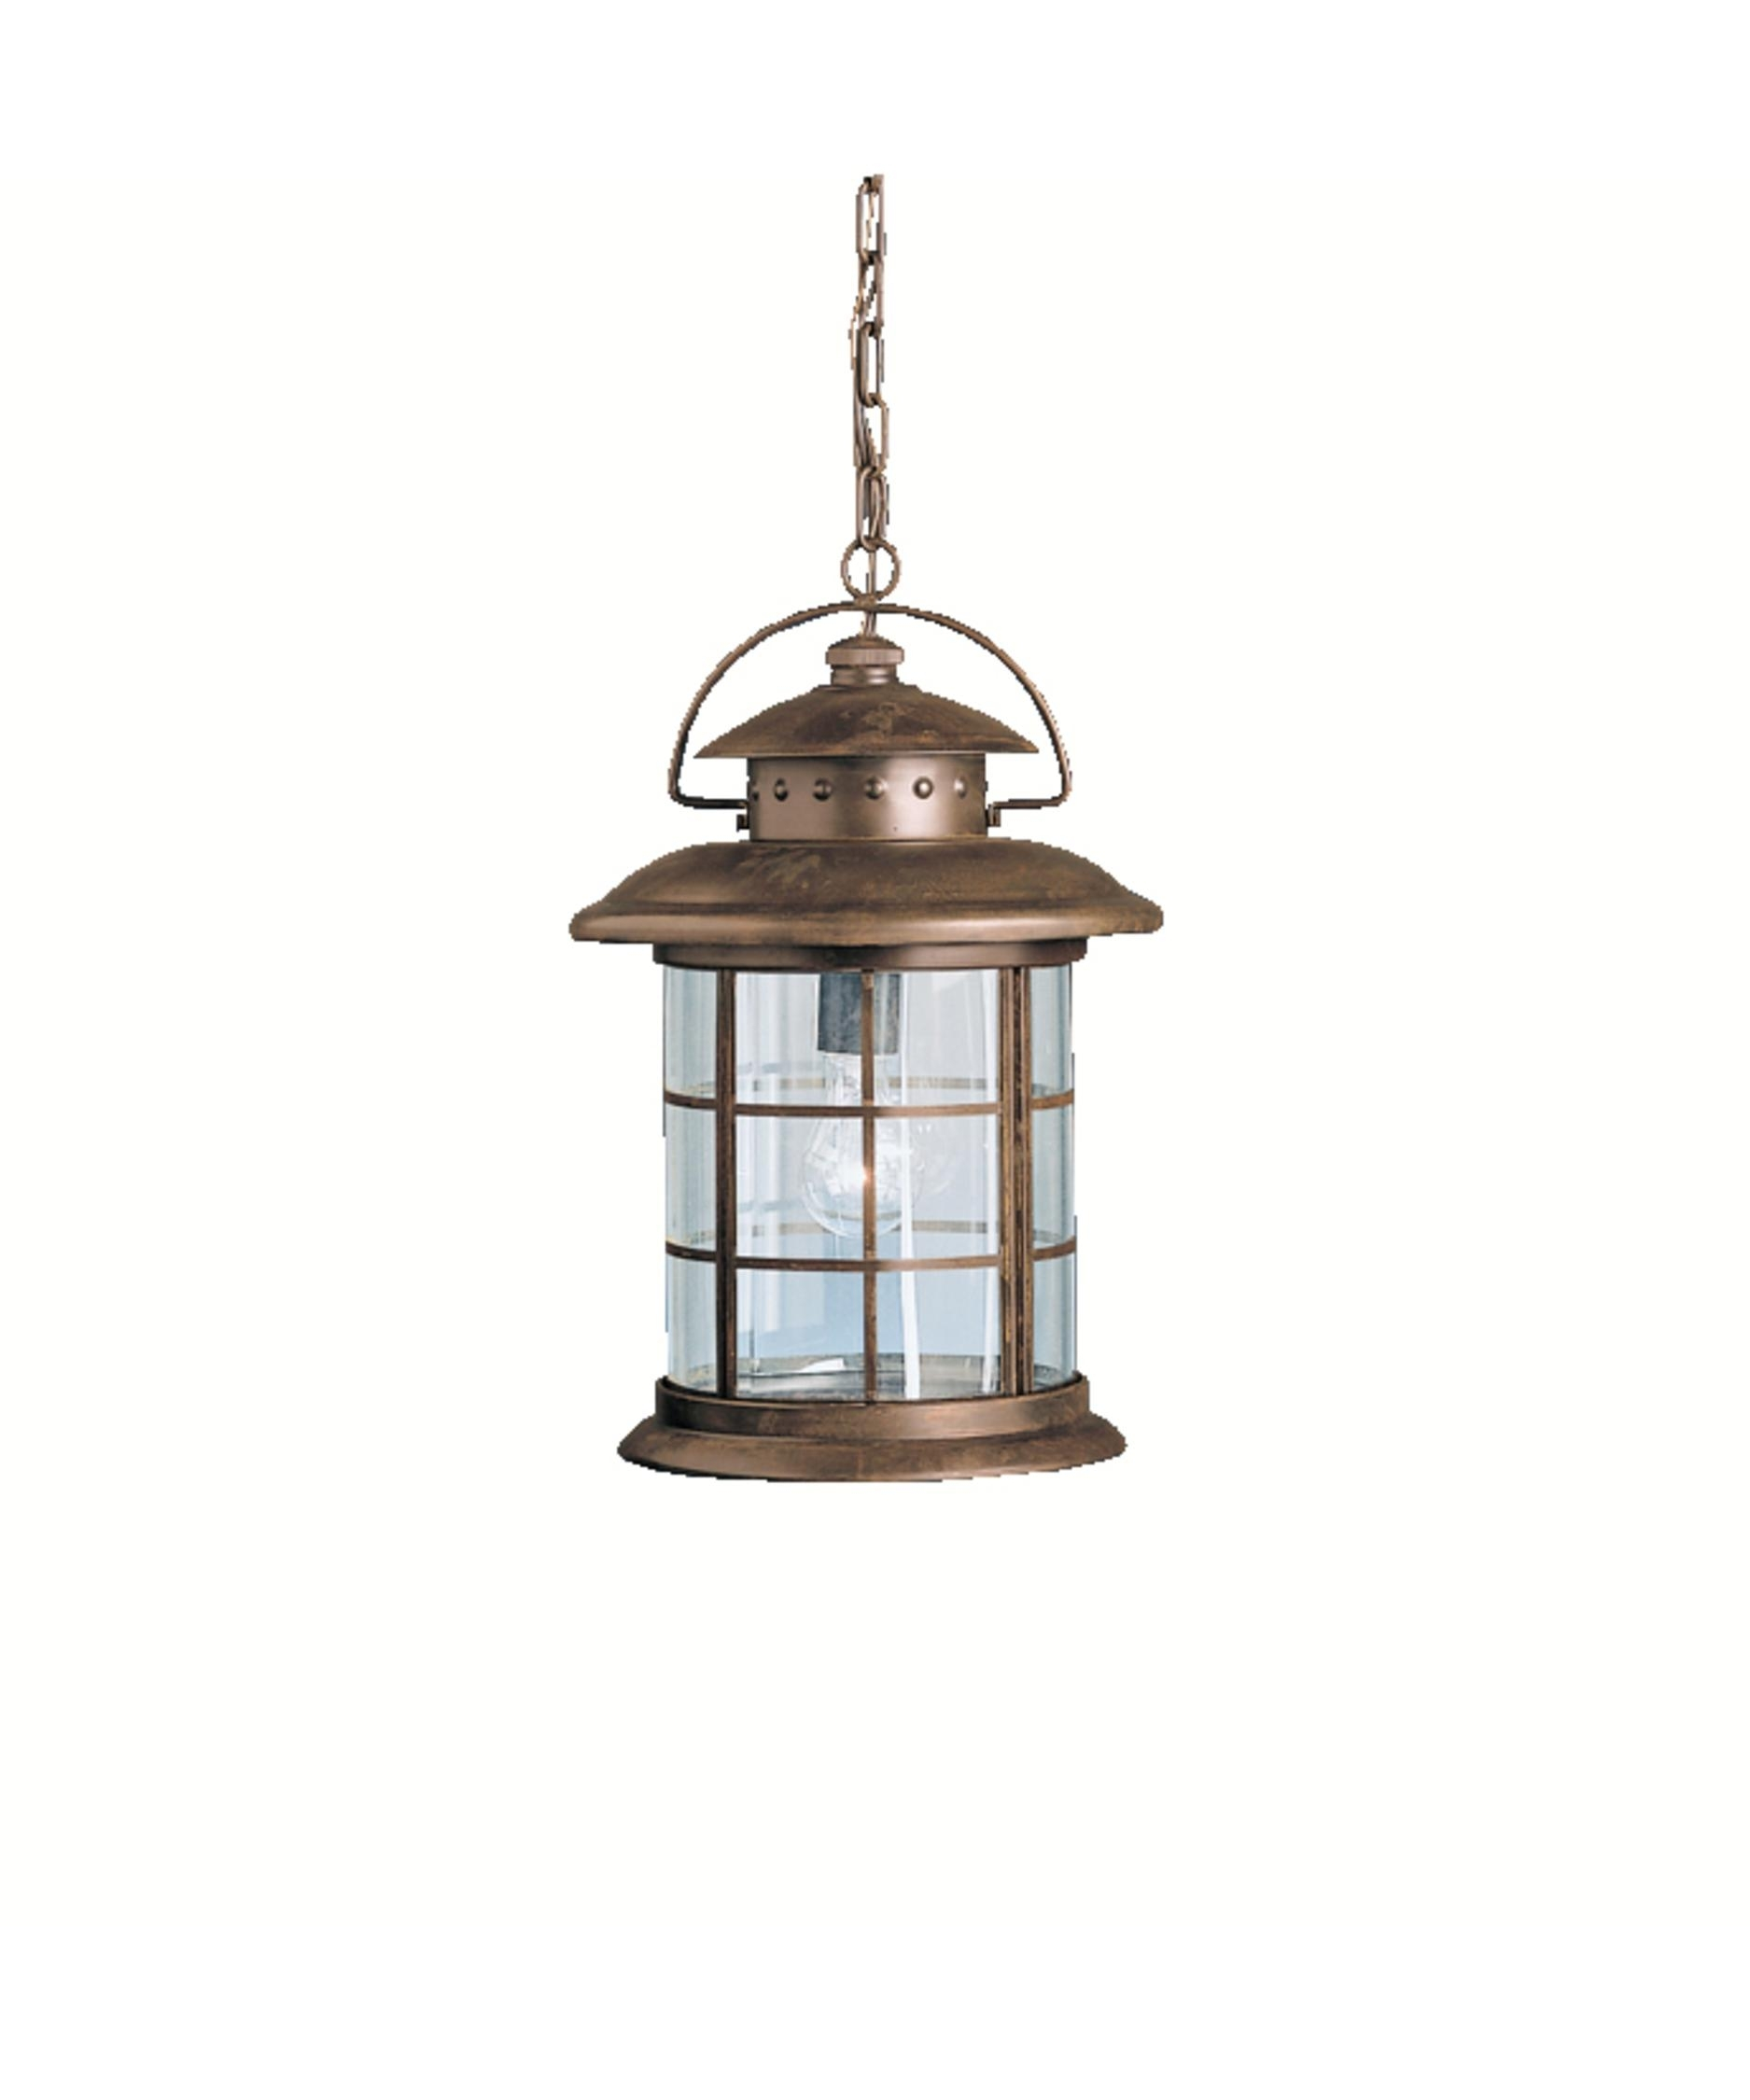 Kichler 9870 Rustic 11 Inch Wide 1 Light Outdoor Hanging Lantern Intended For Rustic Outdoor Hanging Lights (#5 of 15)